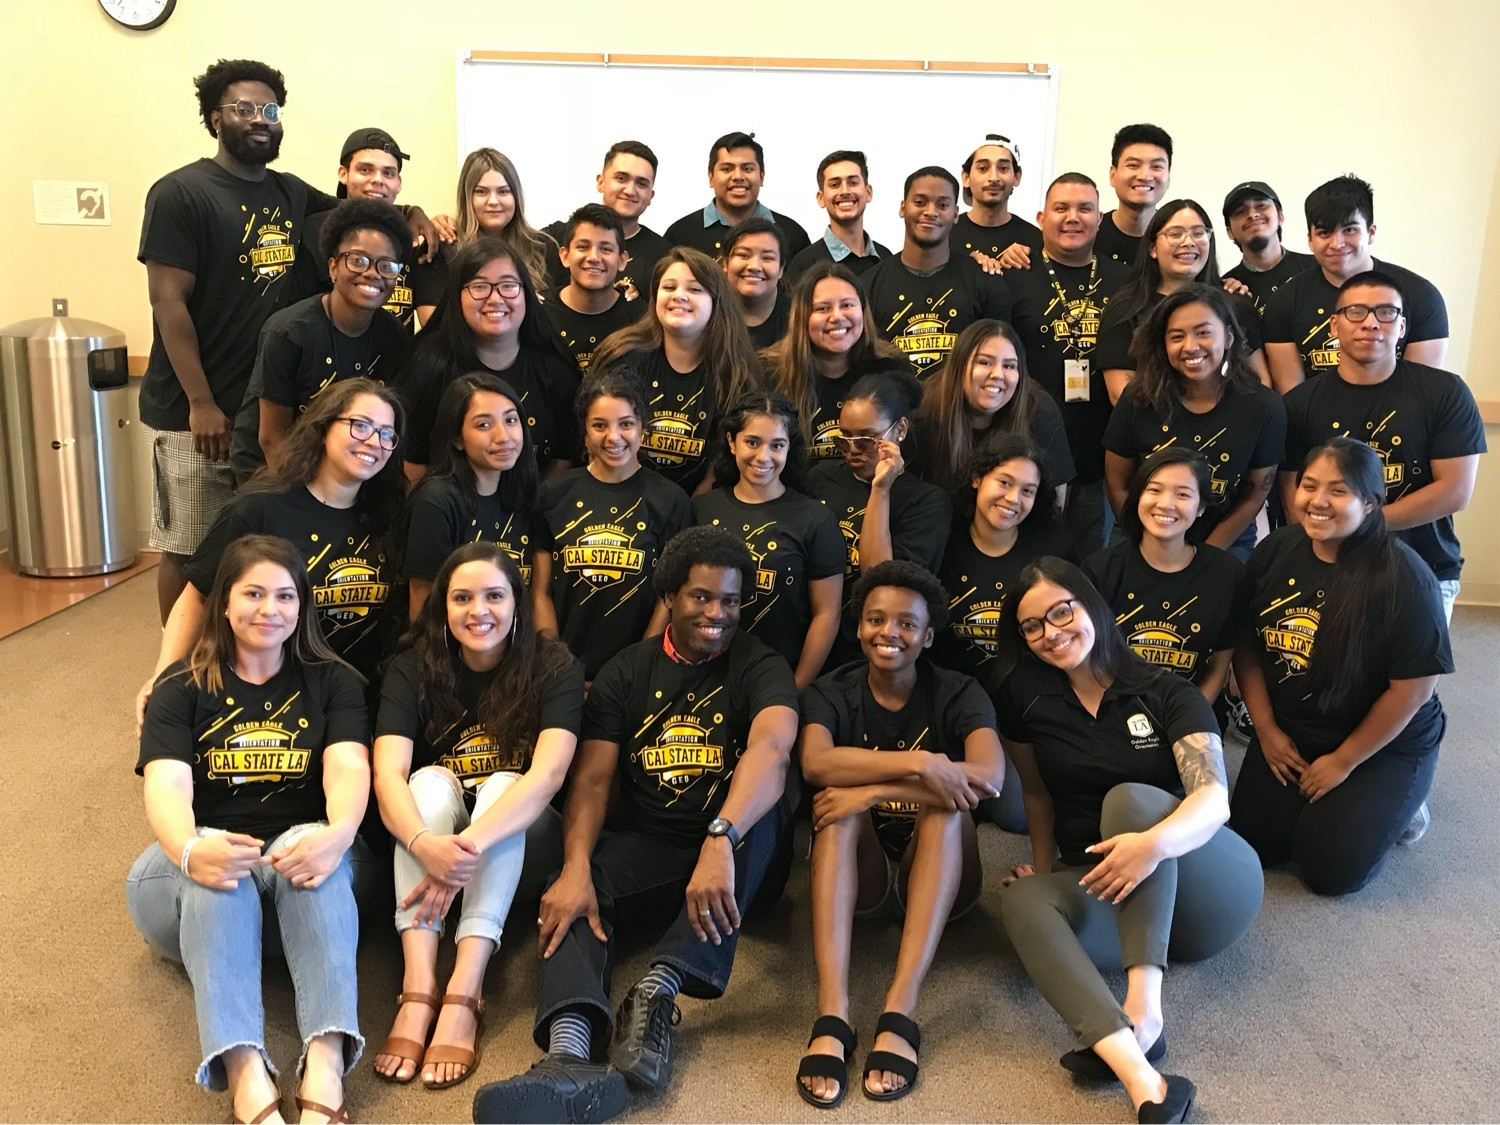 Photo of the summer 2018 Orientation Leader team with full time staff